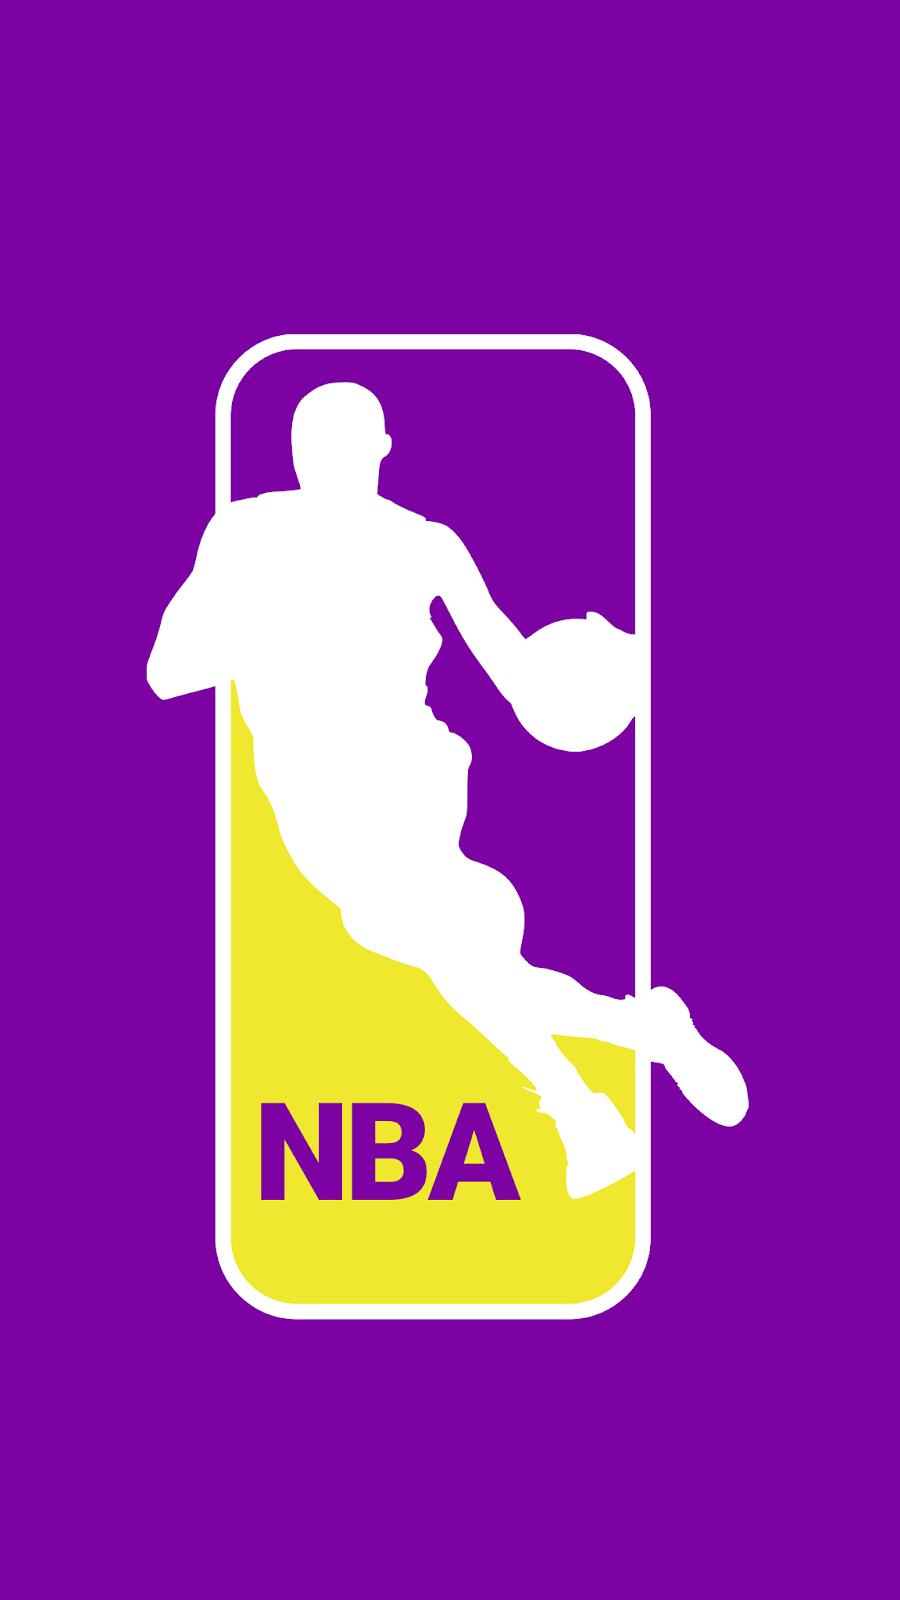 Kobe logo wallpaper